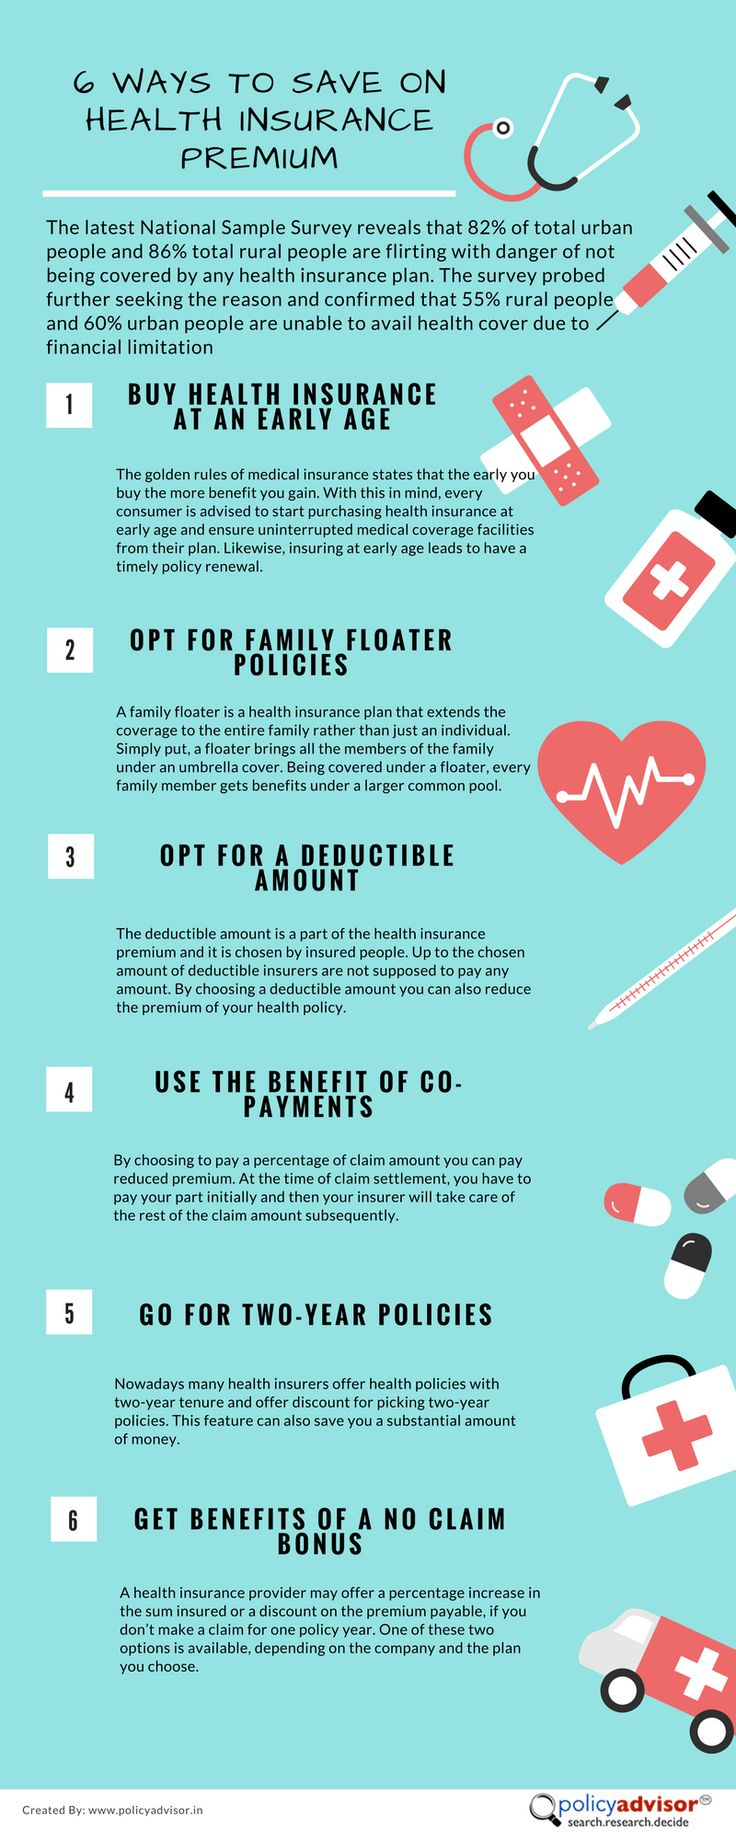 6 Ways To Save On Health Insurance Premium http://www.policyadvisor.in/general-insurance-quotes/compare-health-insurance/